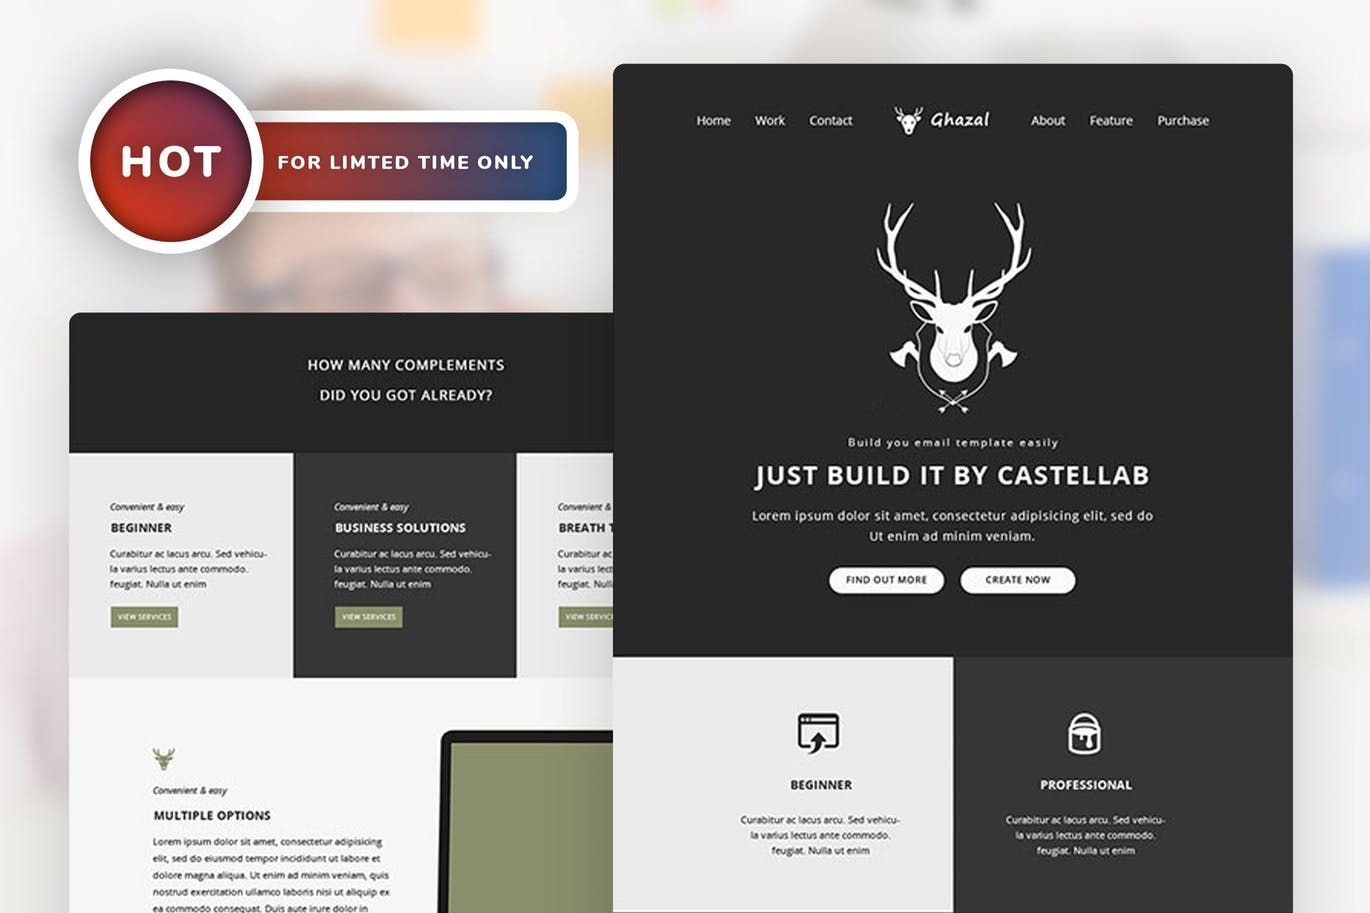 Email Newsletter Template PSD | Email Templates | Pinterest | Email ...